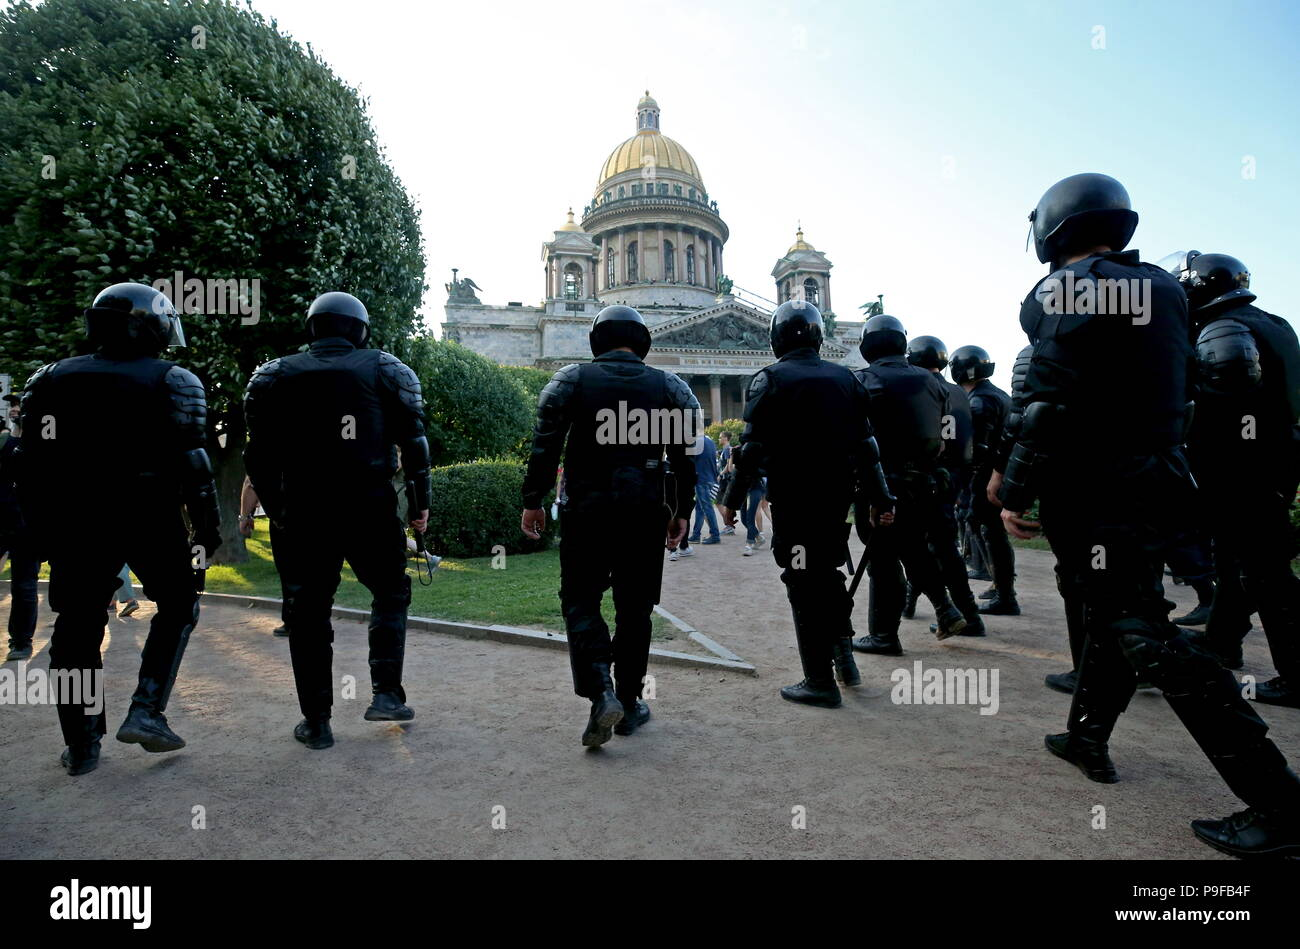 St Petersburg, Russia. 18th July, 2018. ST PETERSBURG, RUSSIA - JULY 18, 2018: Policemen outside St Isaac's Cathedral during an unauthorized St Petersburg rally against a Russian government proposal to raise the retirement age from 60 to 65 for men, and from 55 to 63 for women within the next two decades. Peter Kovalev/TASS Credit: ITAR-TASS News Agency/Alamy Live News - Stock Image